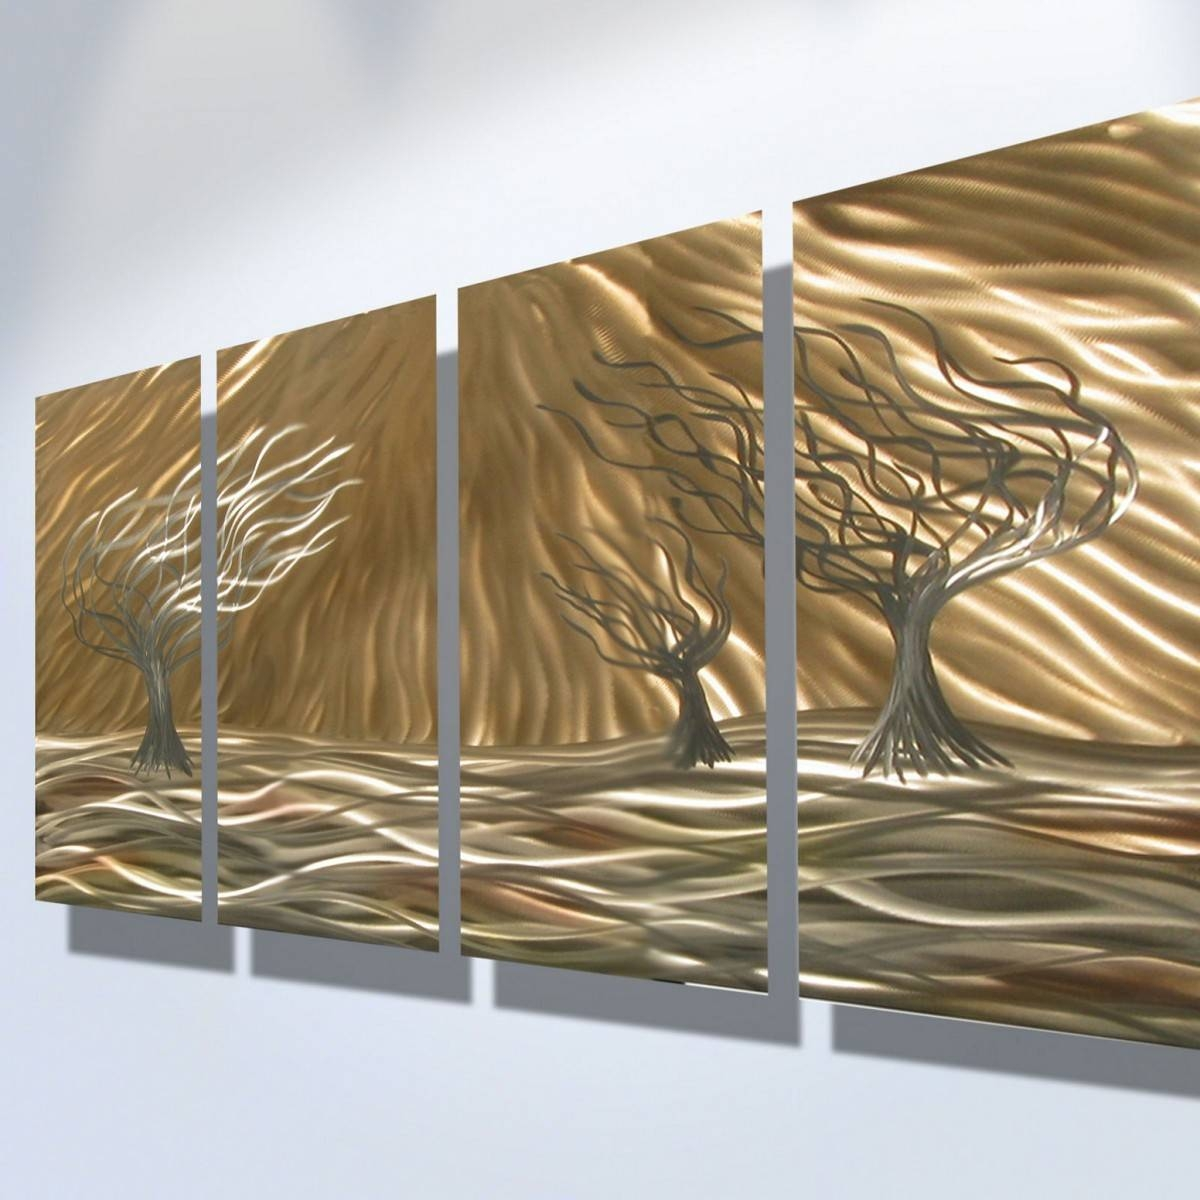 Metal Wall Art Panels For Interior Décor In Most Popular Metal Wall Artworks (View 11 of 20)